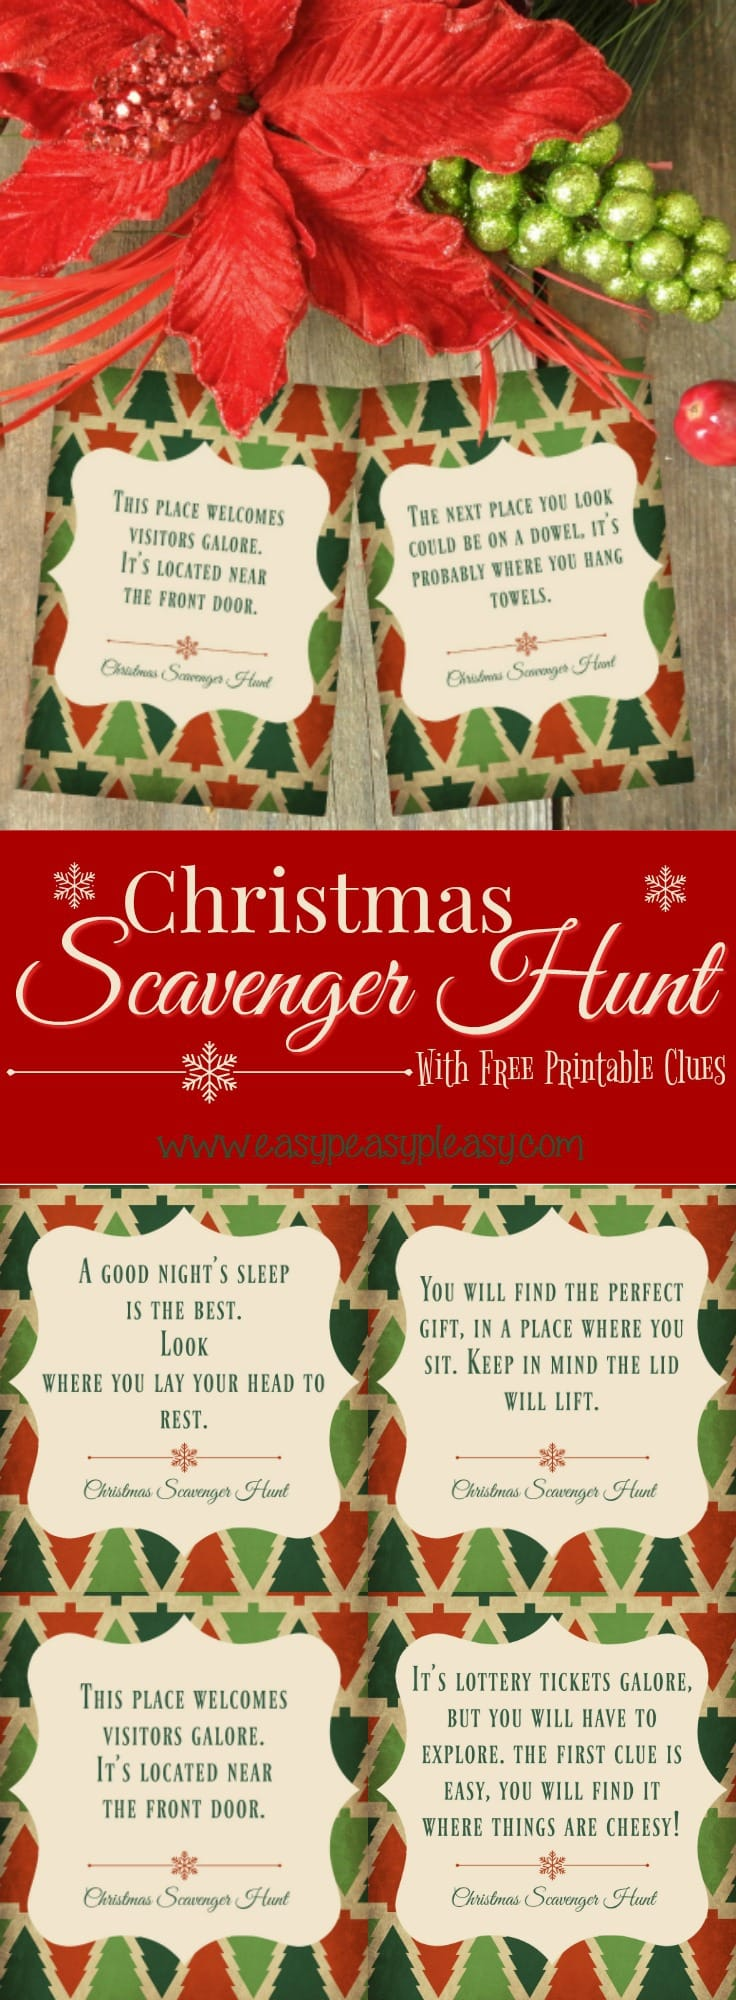 image regarding Christmas Scavenger Hunt Printable Clues identify Xmas Scavenger Hunt With Free of charge Printable Clues - Simple